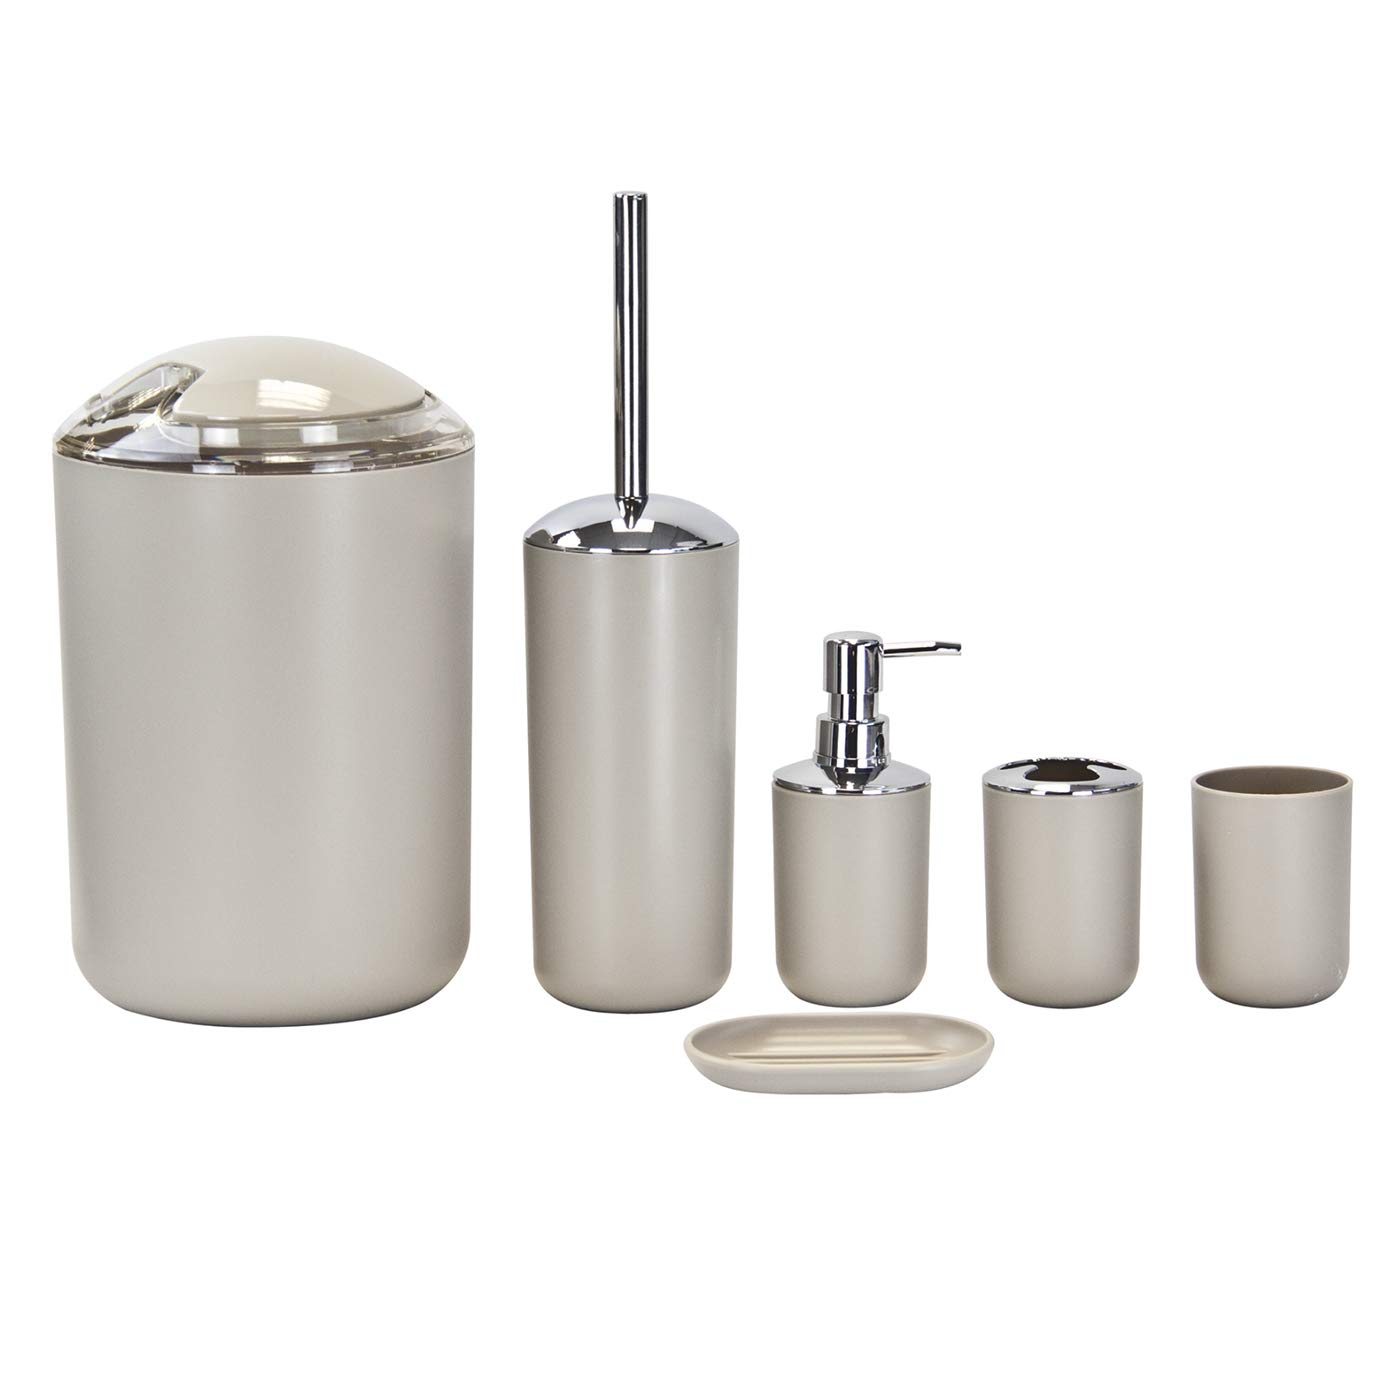 6pc Bathroom Accessories Set - Lotion Dispenser, Soap Dish, Holder ...